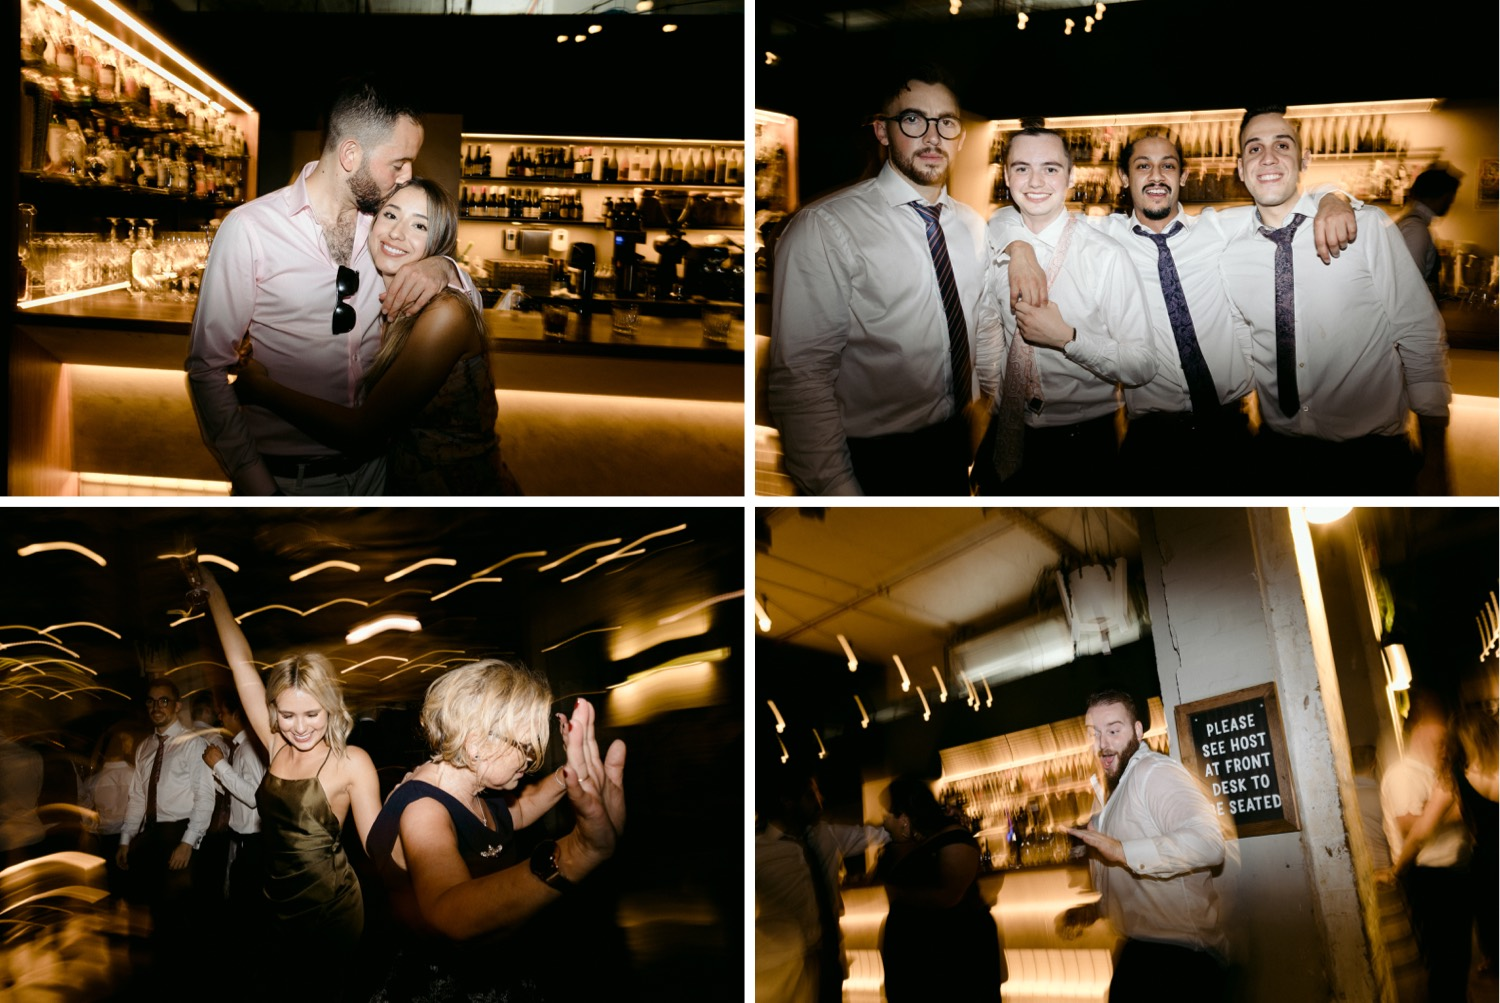 montage of wedding guests dancing